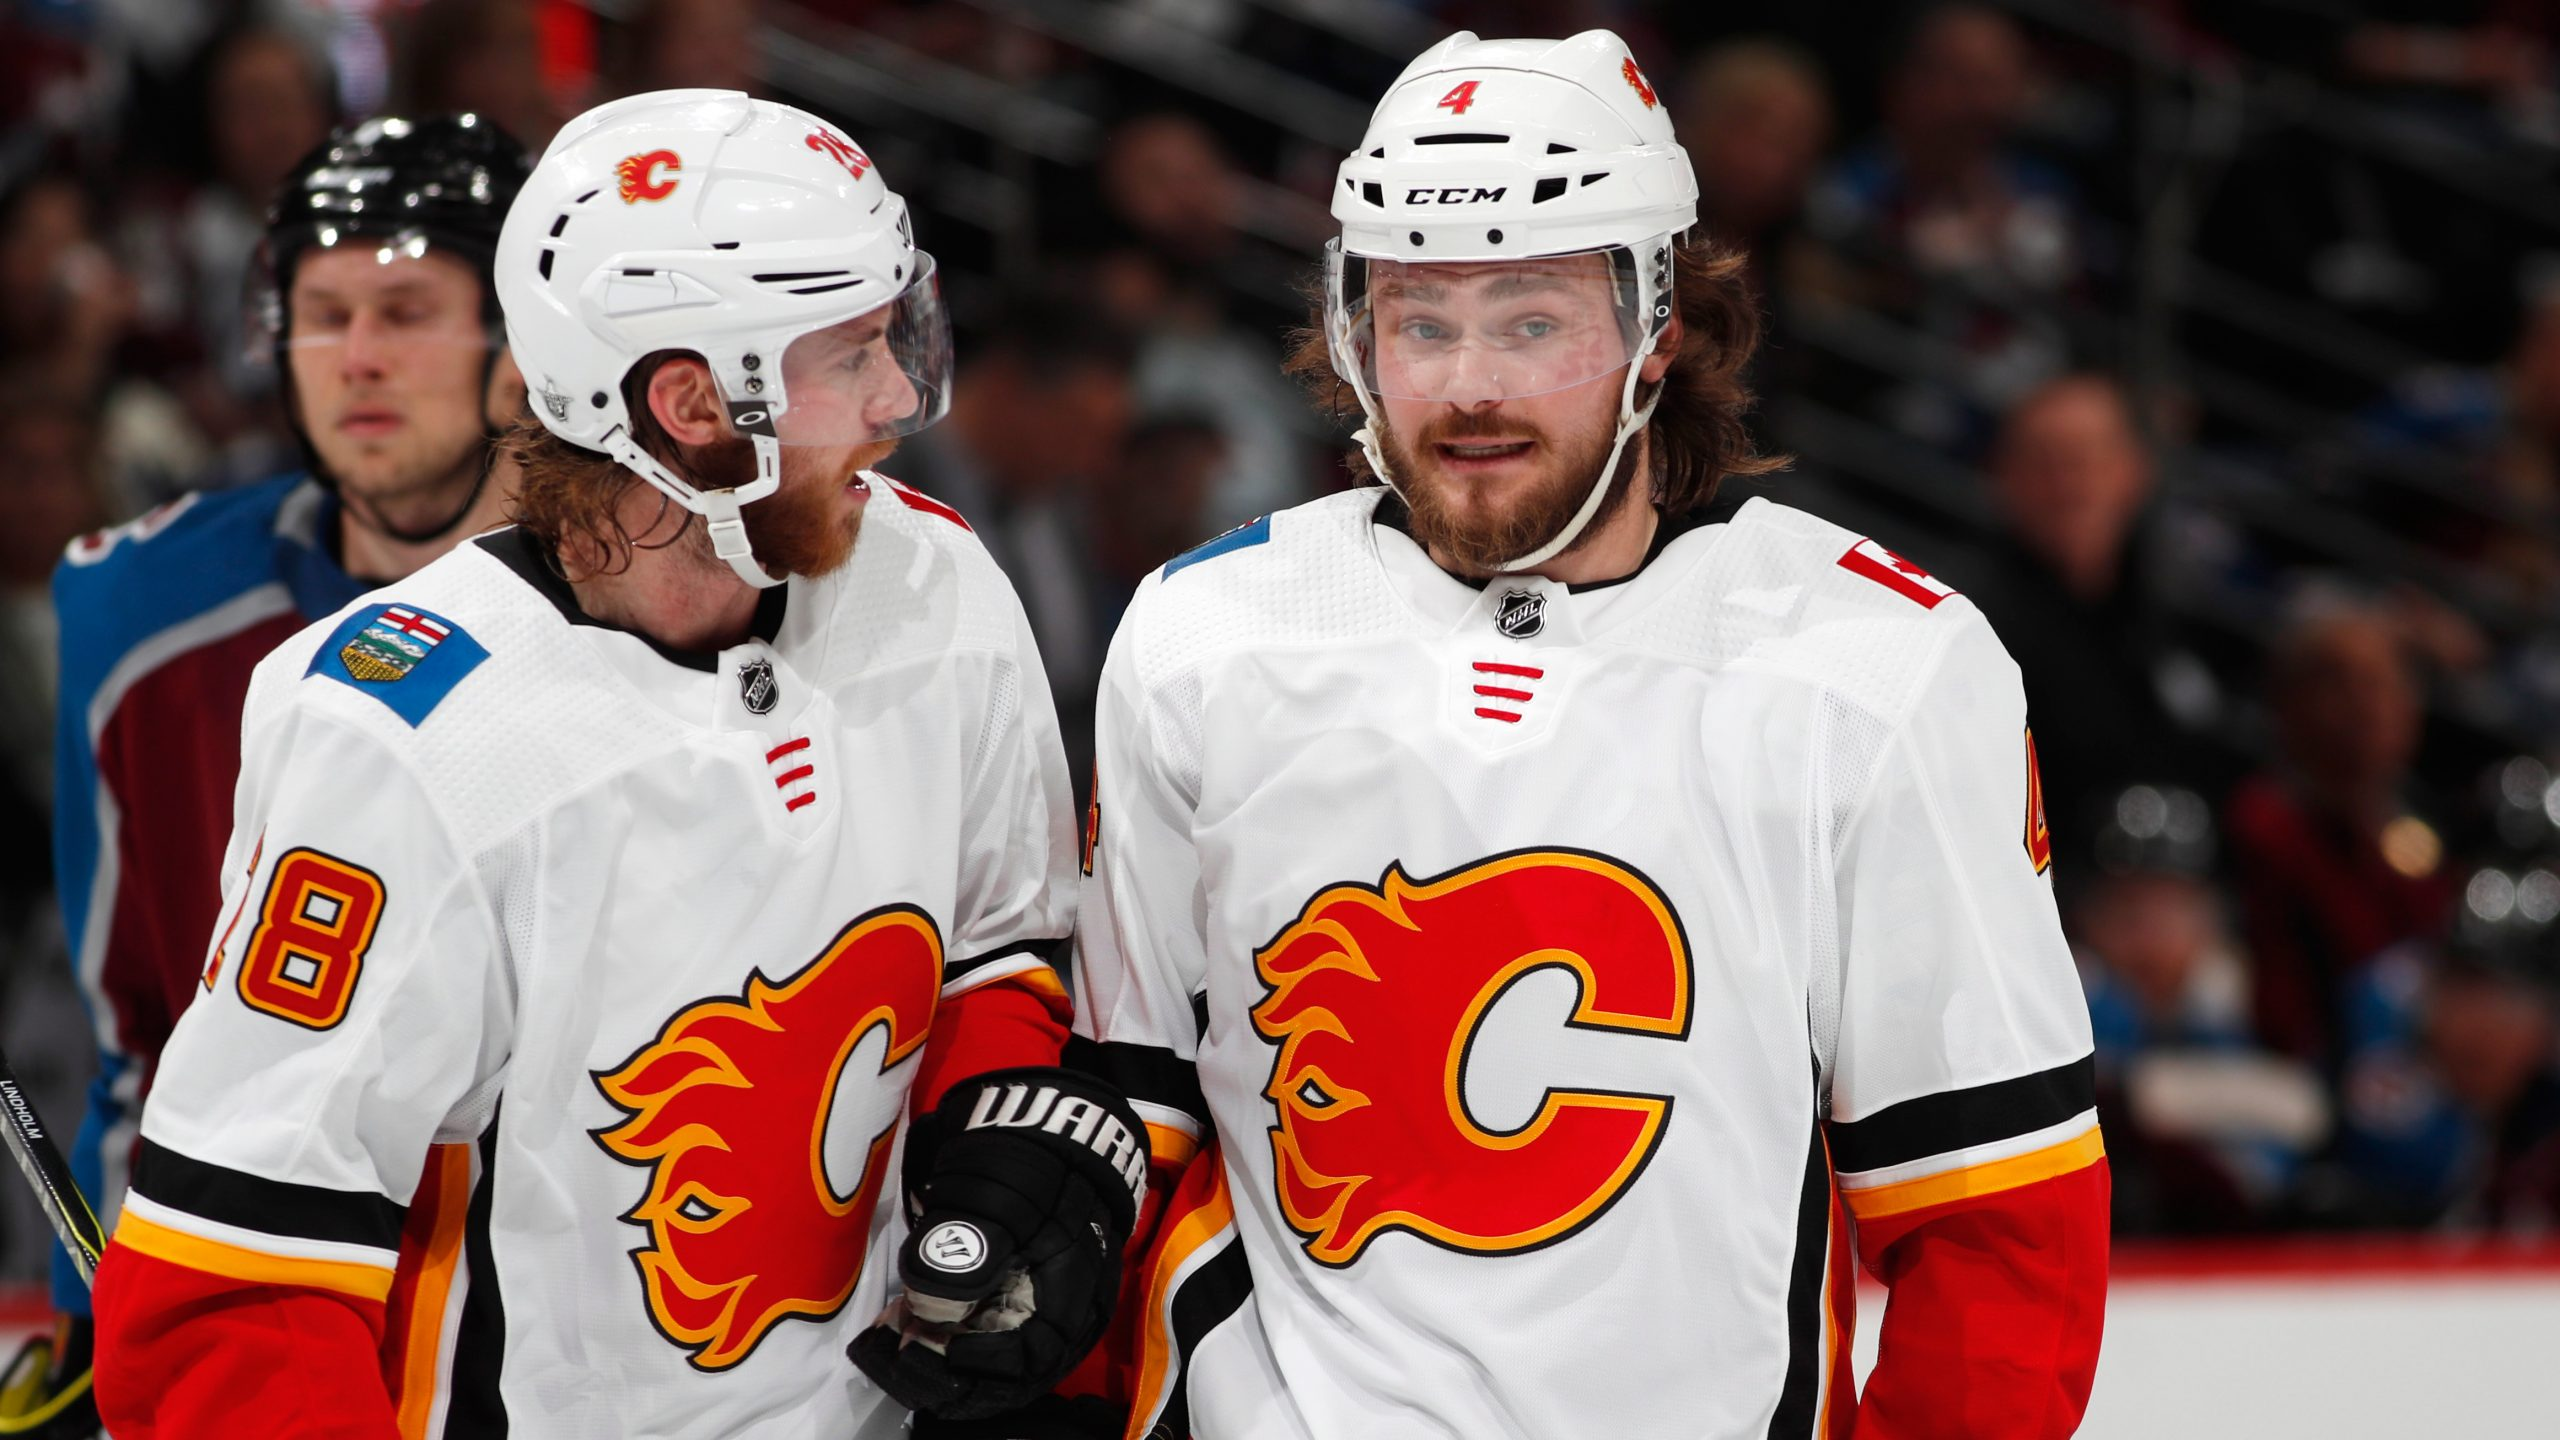 Flames' Rasmus Andersson fined $5K for roughing Oilers' Yamamoto